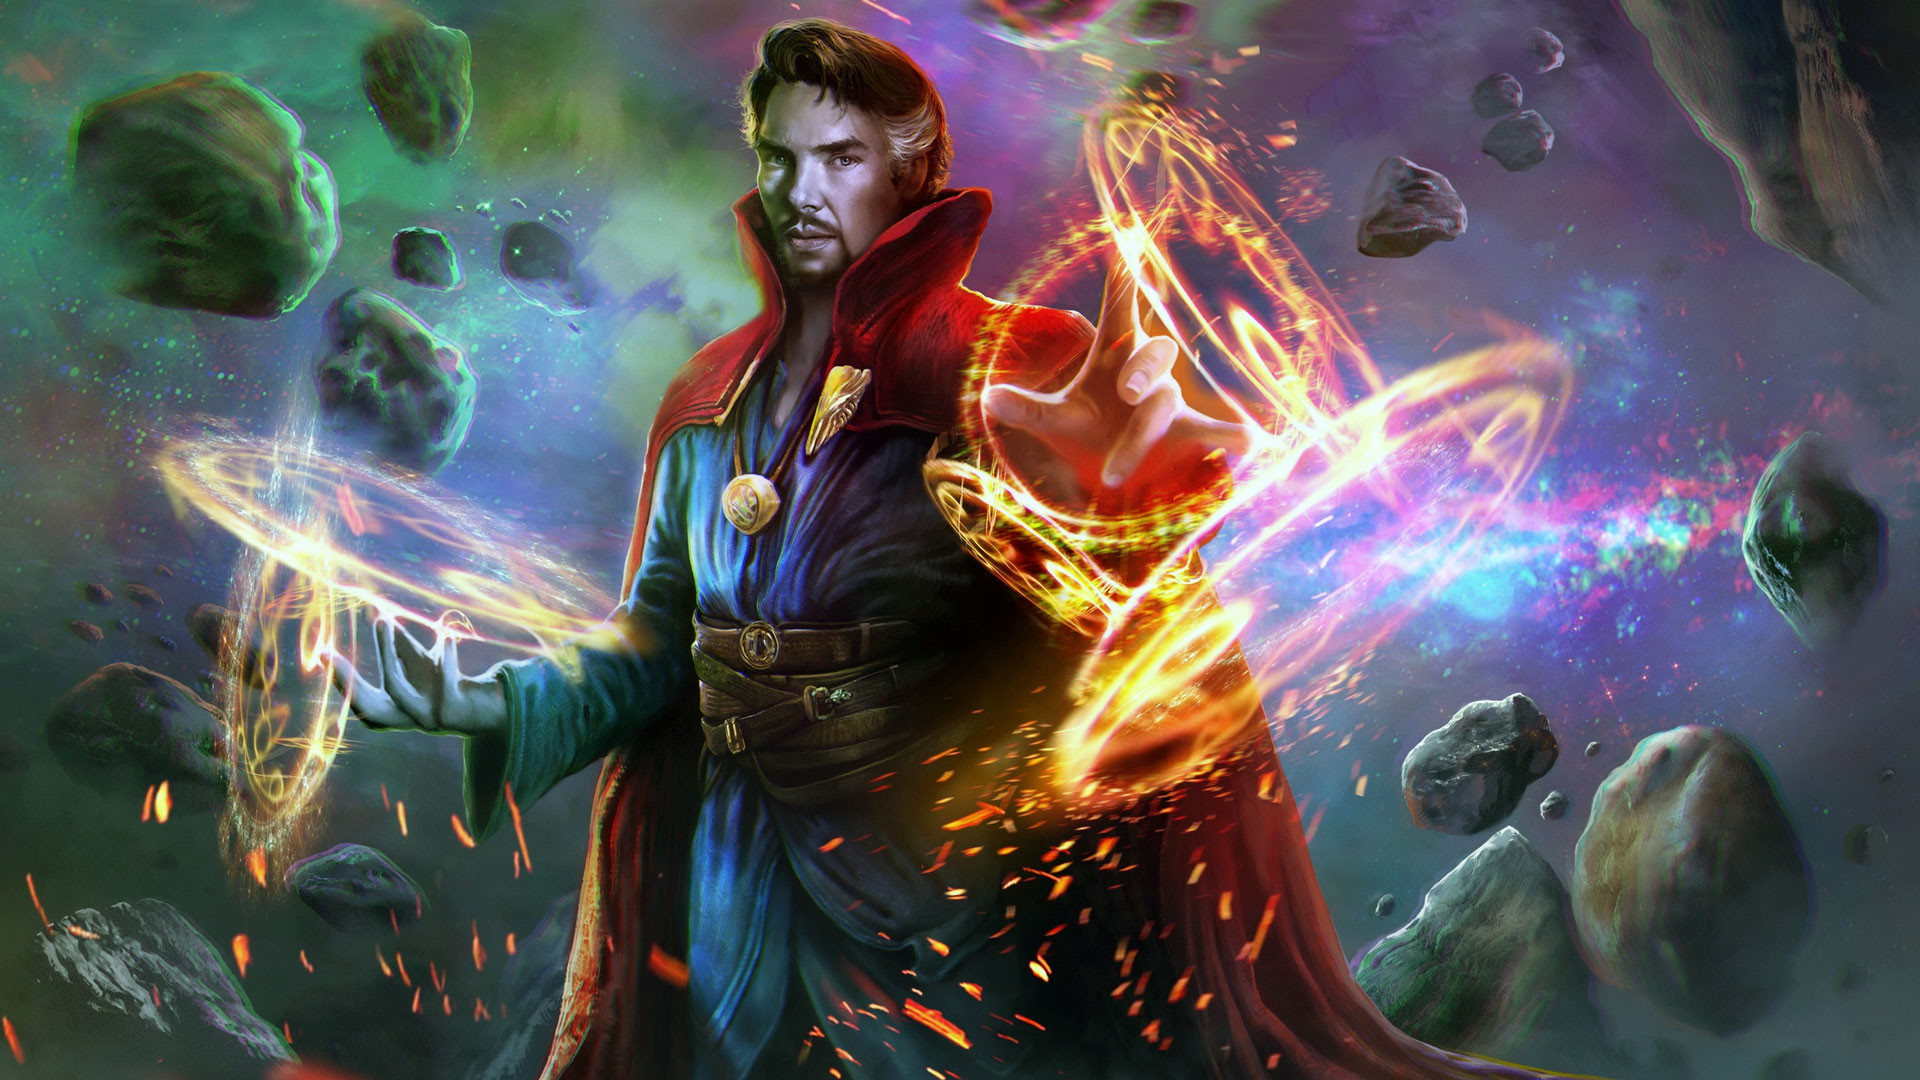 1920x1080 Dr Strange Backgrounds Desktop.